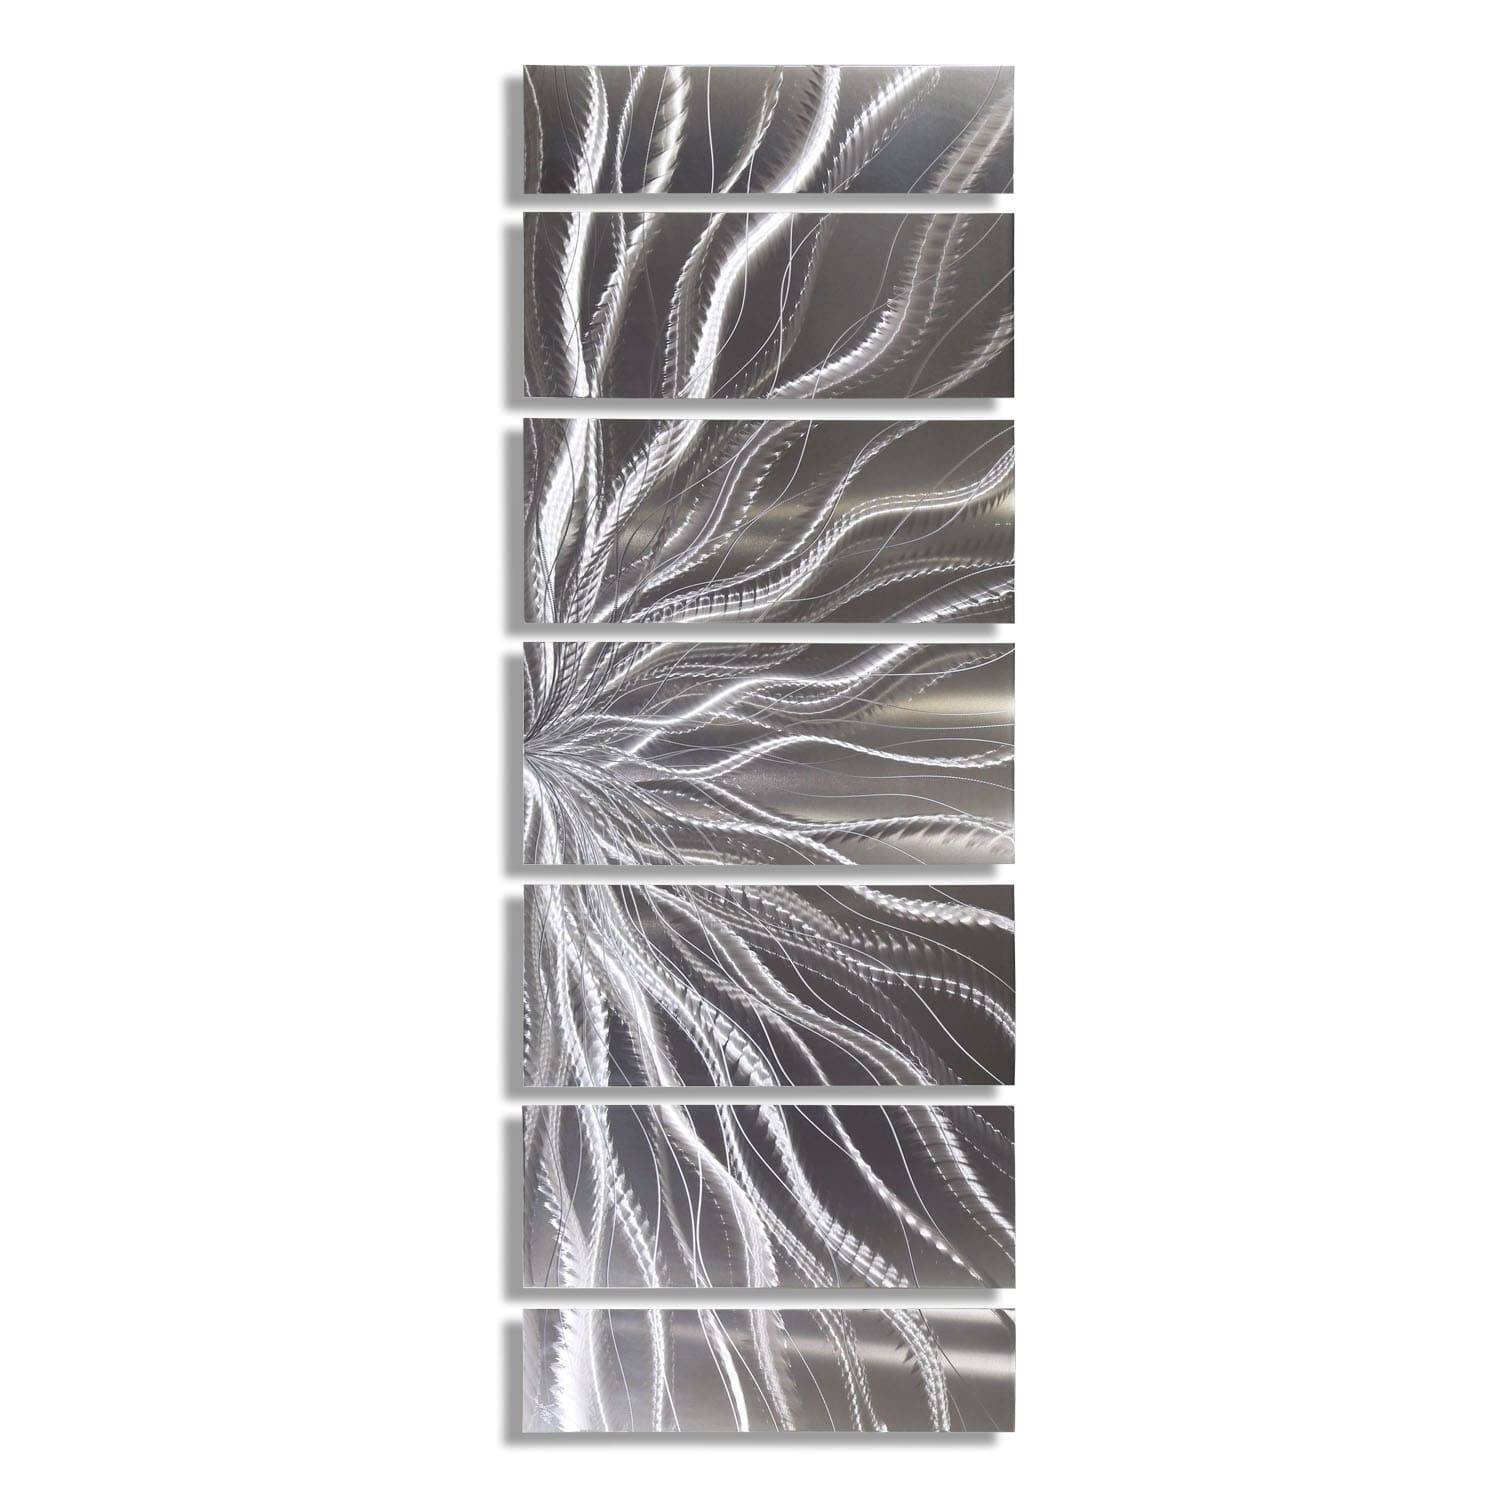 Statements2000 Silver Abstract Etched Metal Wall Art Sculpture For Most Popular Etched Metal Wall Art (View 12 of 20)